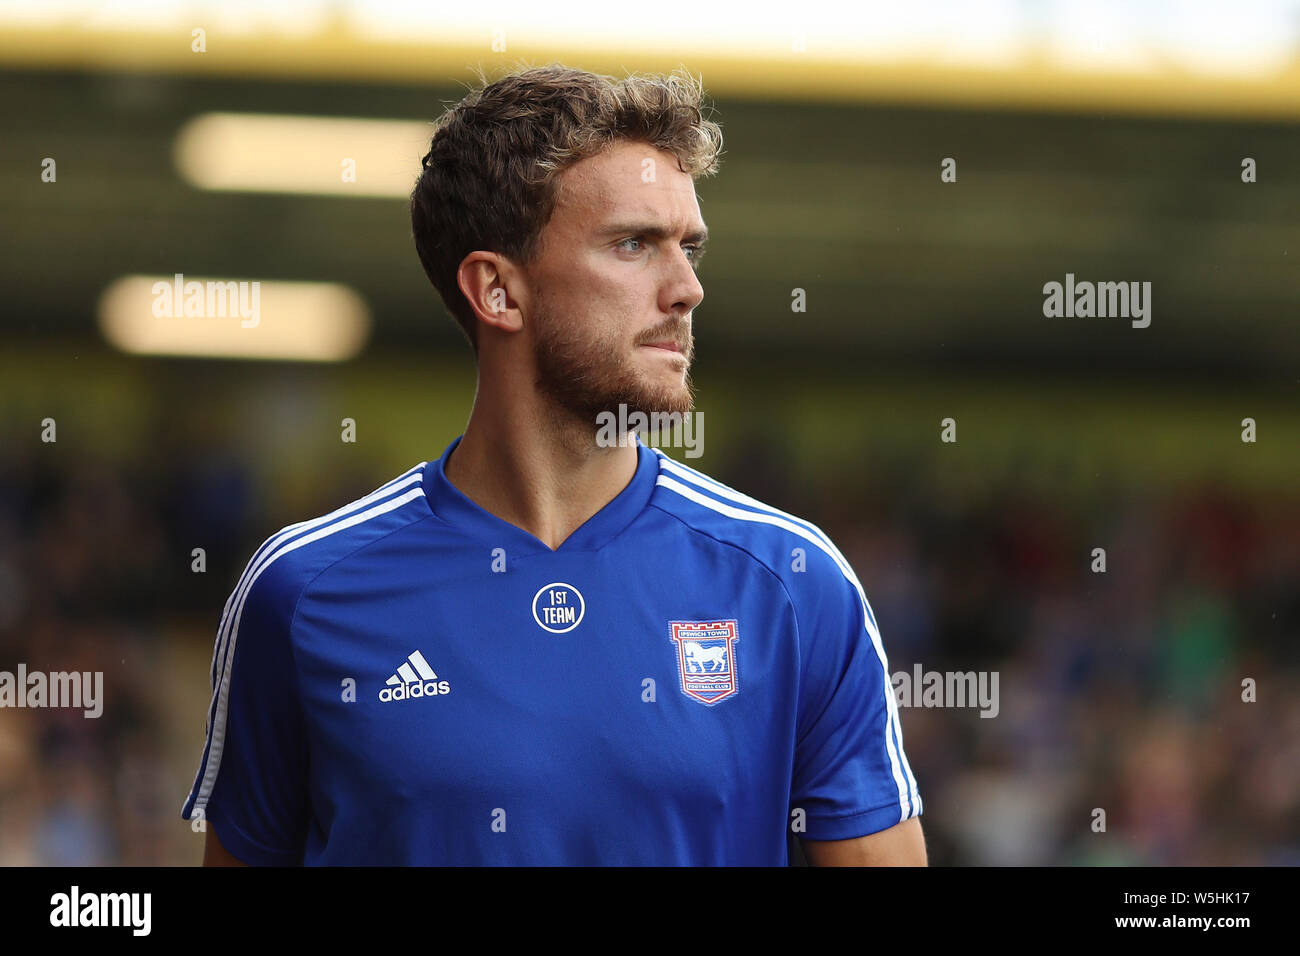 Emyr Huws of Ipswich Town - Cambridge United v Ipswich Town, Pre-Season Friendly, Abbey Stadium, Cambridge - 27th July 2019 Stock Photo